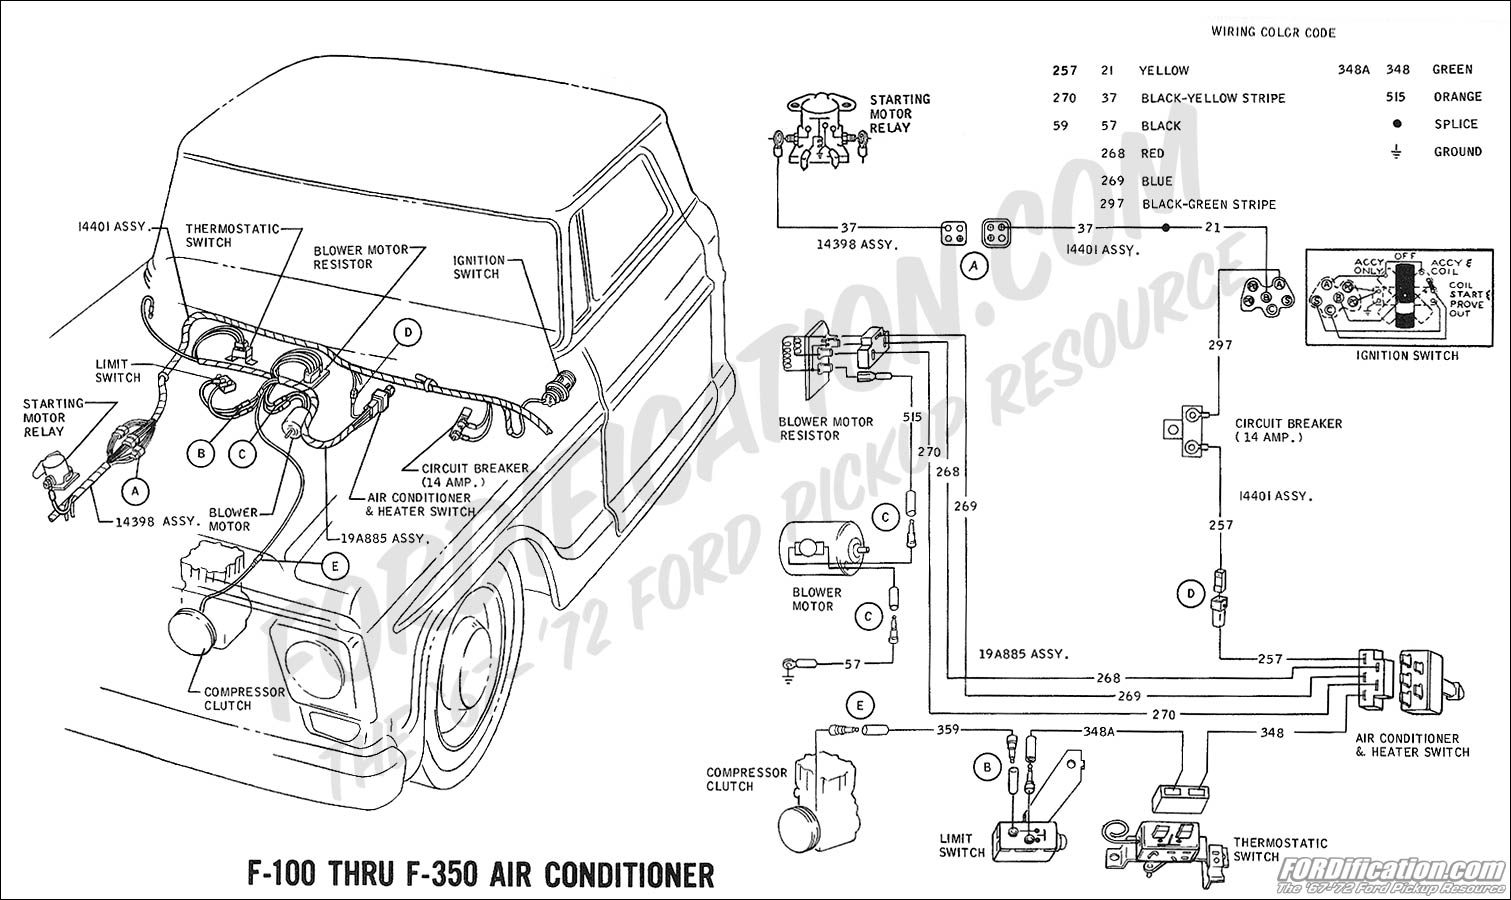 Ford Truck Technical Drawings And Schematics Section H Wiring Expedition Factory Radio Harness 1969 F 100 Thru 350 Air Conditioner